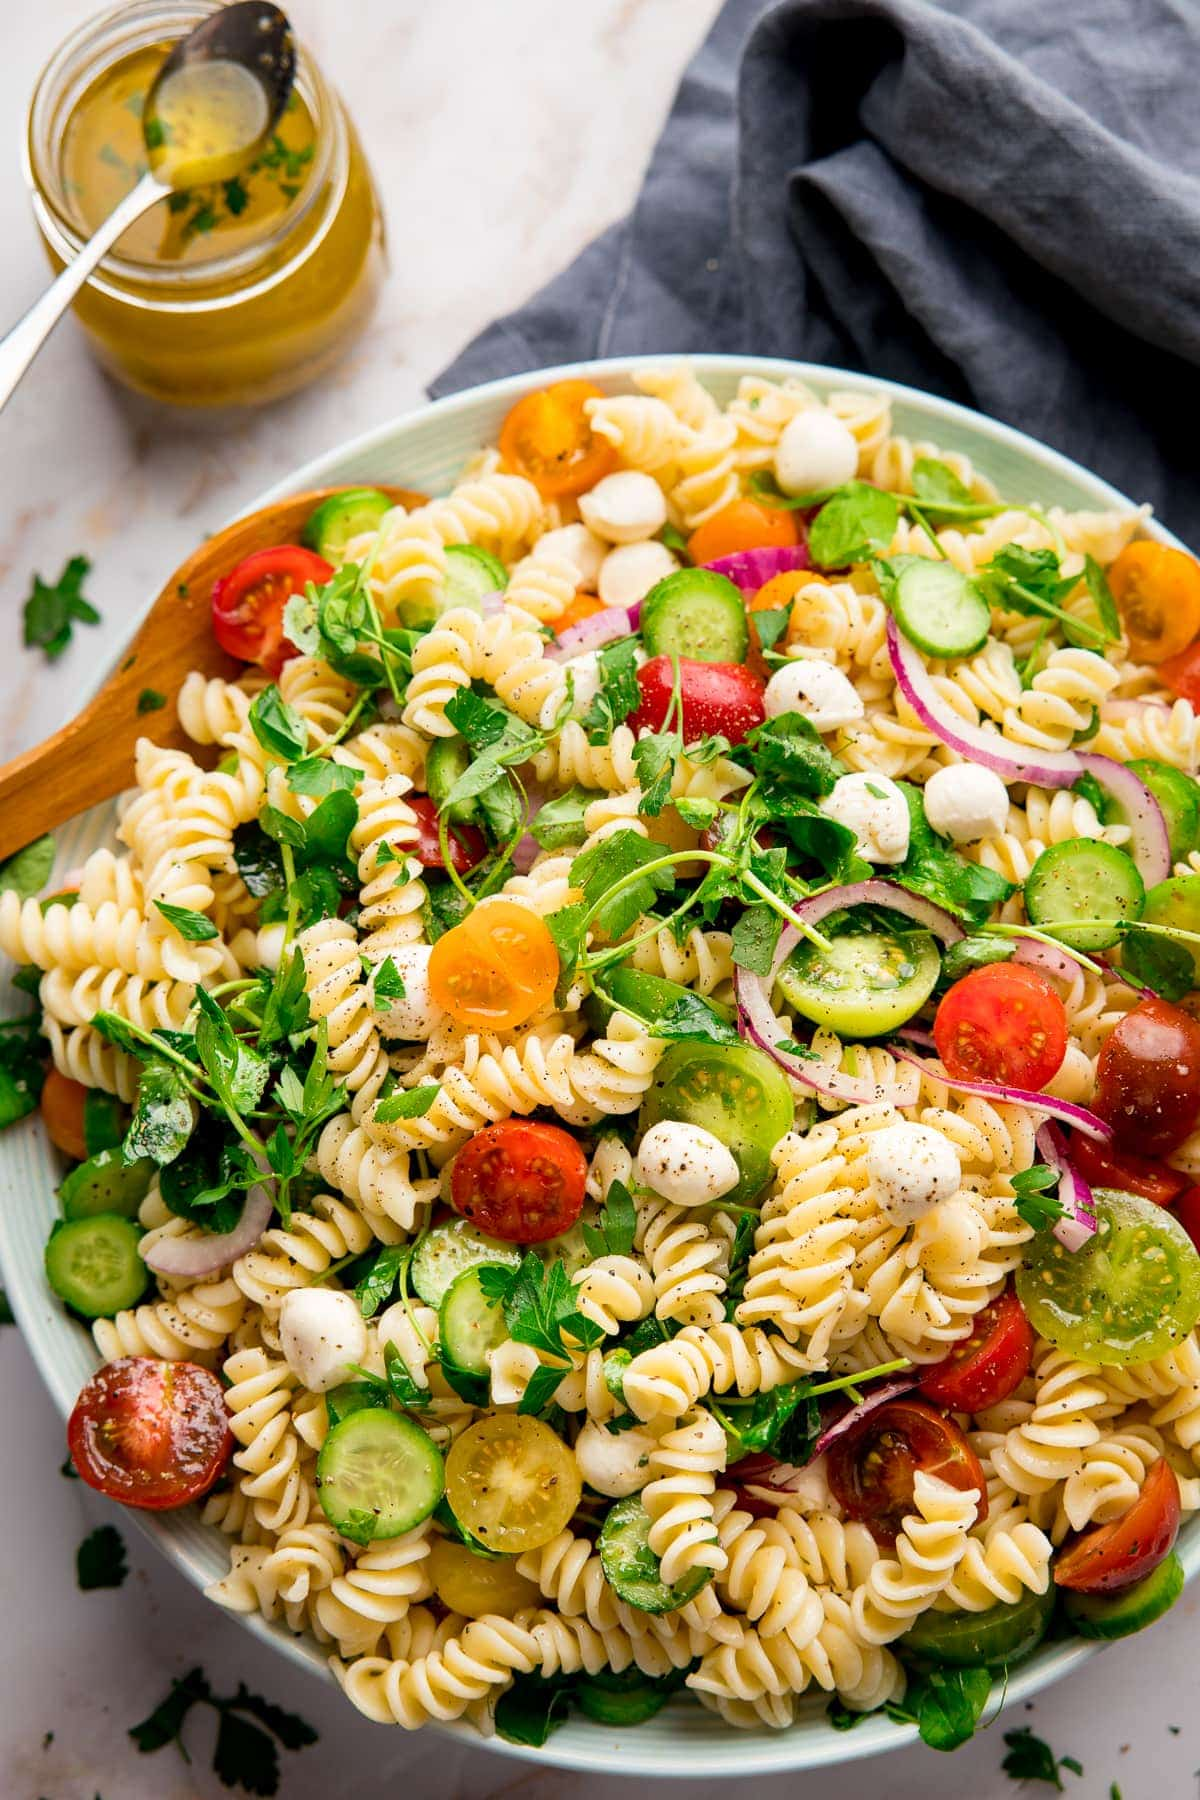 Large bowl filled with pasta salad